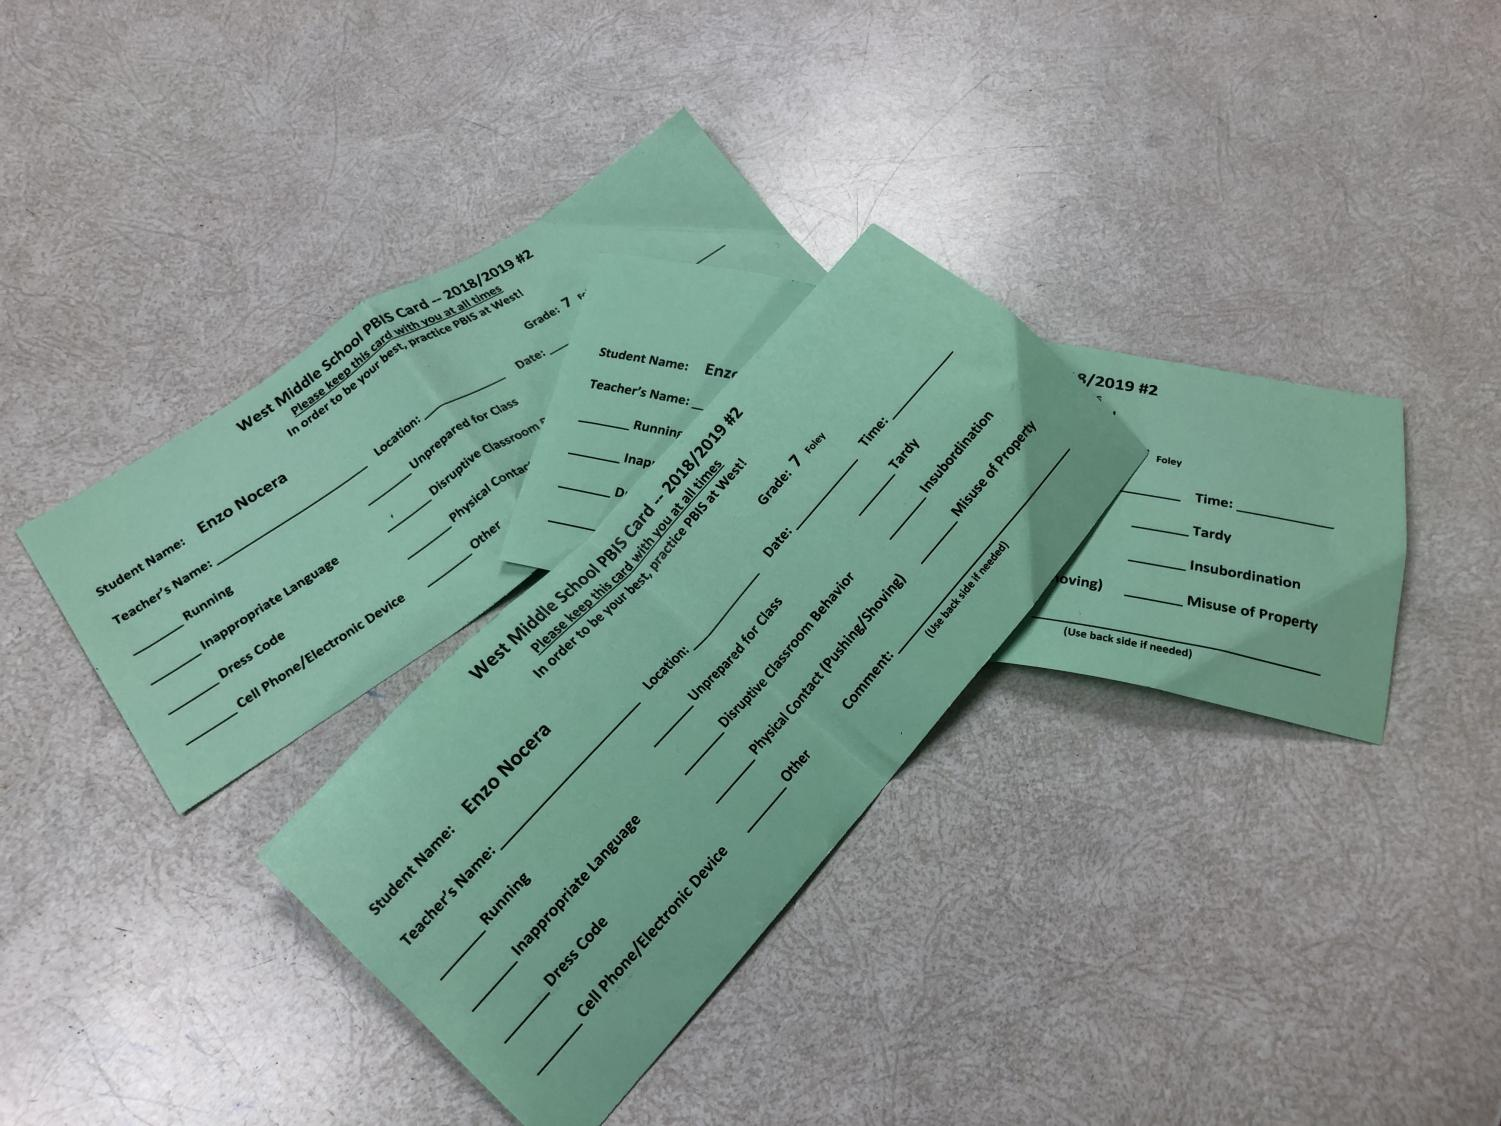 Enzo Nocera's PBIS cards that will be used as tickets for snacks and hot coco.